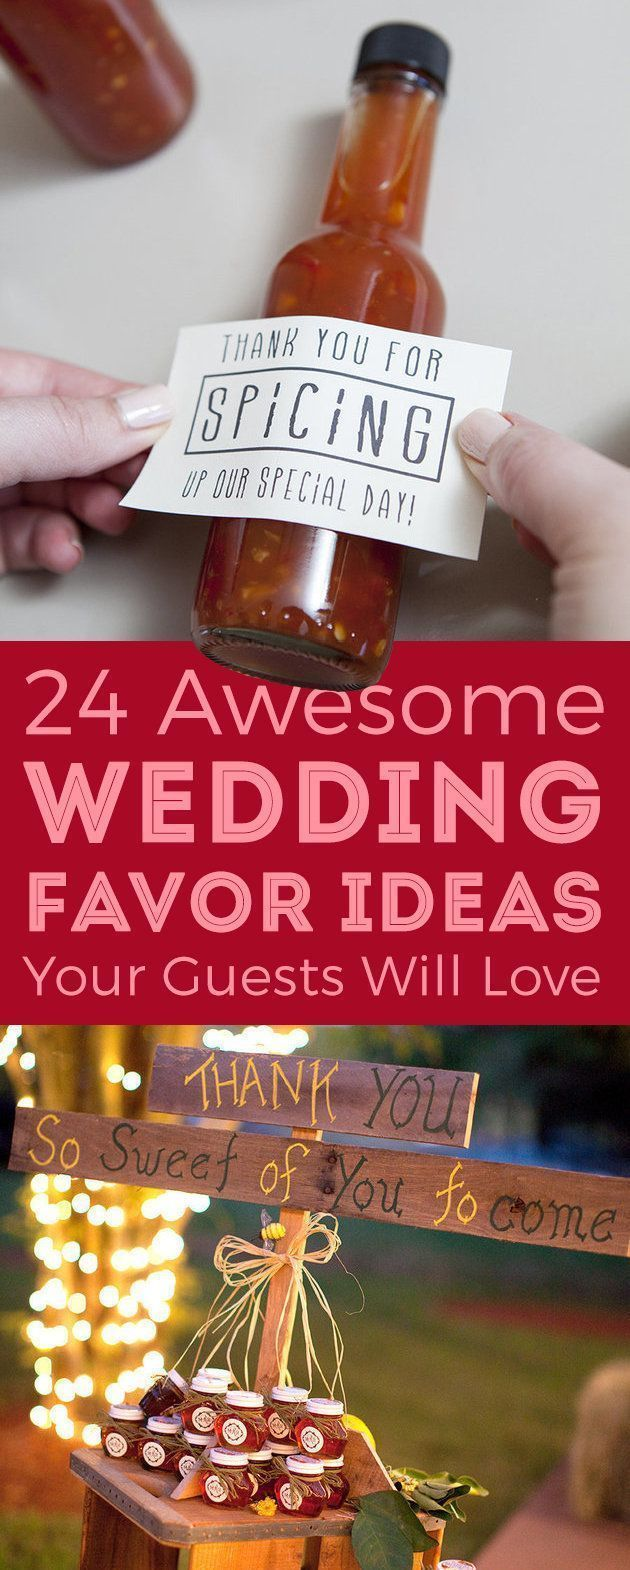 Wedding favor ideas that donut suck most involve food and alcohol